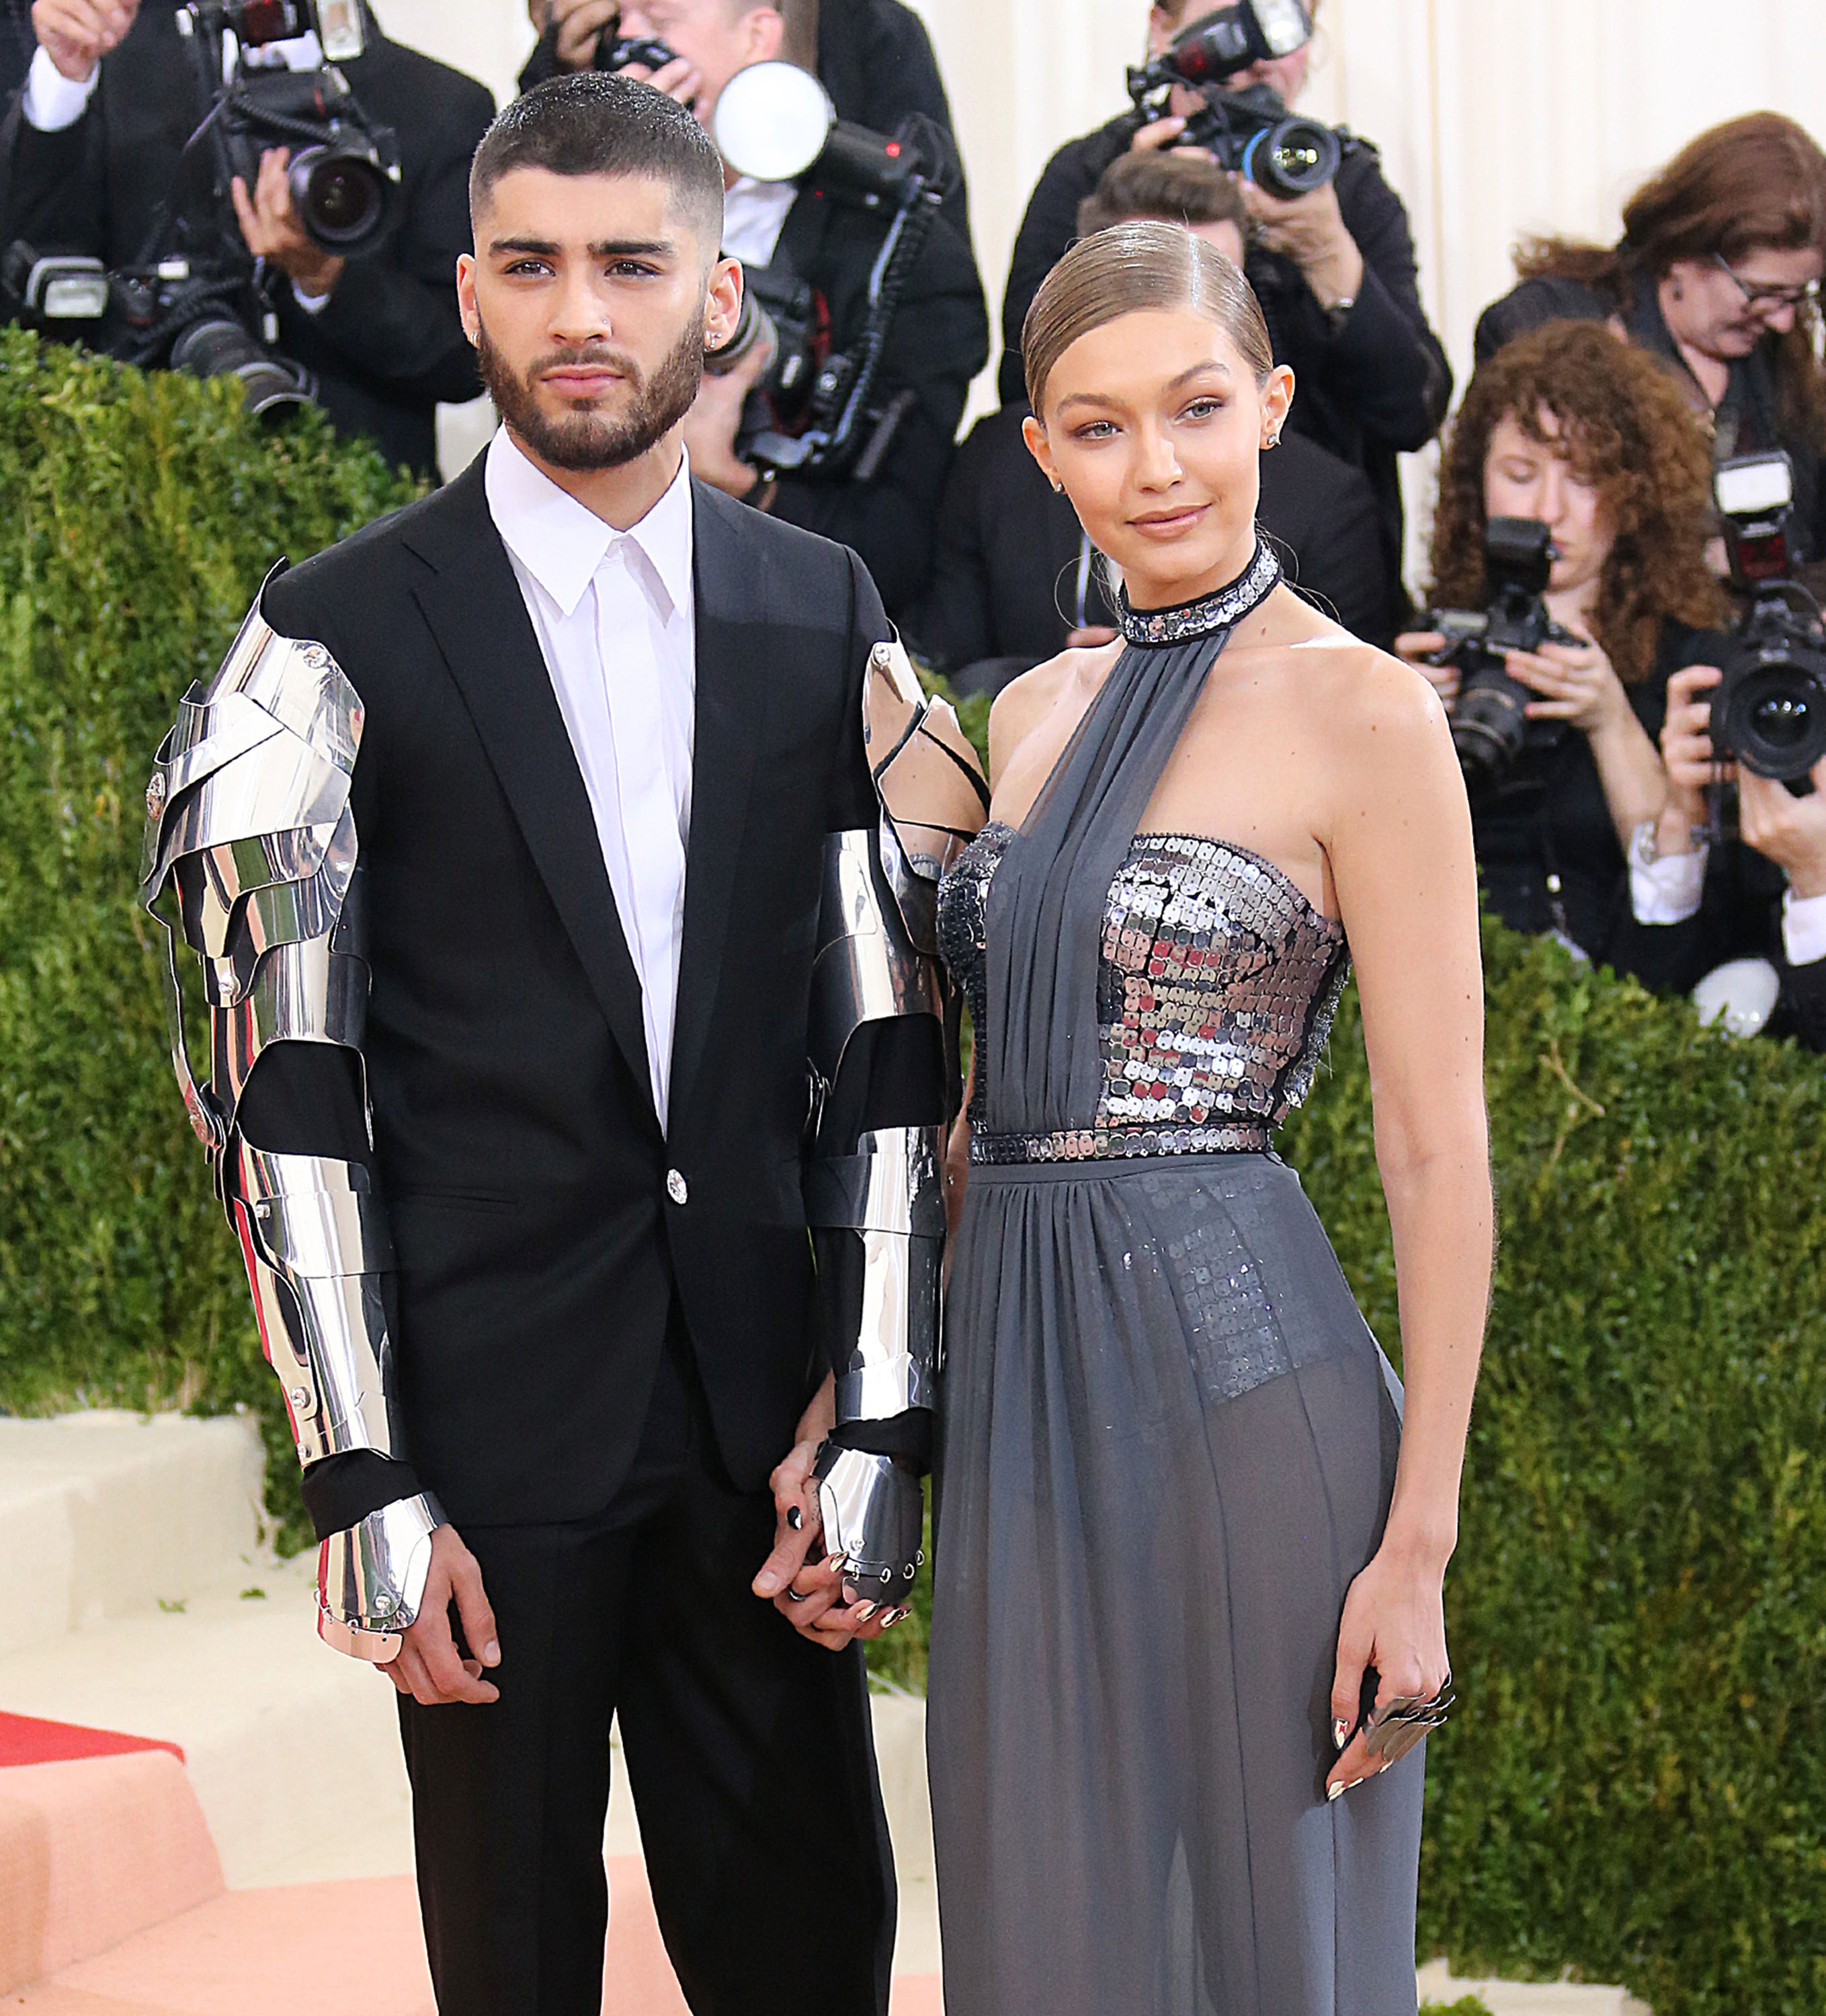 Katy Perry, Jessica Chastain, FKA Twigs (L) and Robert Pattinson, Nicki Minaj, Madonna, Kristen Stewart arrive at the 2016 Met Gala, Costume Institute Benefit at The Metropolitan Museum of Art celebrating the opening of Manus x Machina: Fashion in an Age of Technology.  <P> Pictured: Gigi Hadid and Zayn Malik <B>Ref: SPL1274189  020516  </B><BR/> Picture by: Jackson Lee / Splash News<BR/> </P><P> <B>Splash News and Pictures</B><BR/> Los Angeles:310-821-2666<BR/> New York:212-619-2666<BR/> London:870-934-2666<BR/> <span id=